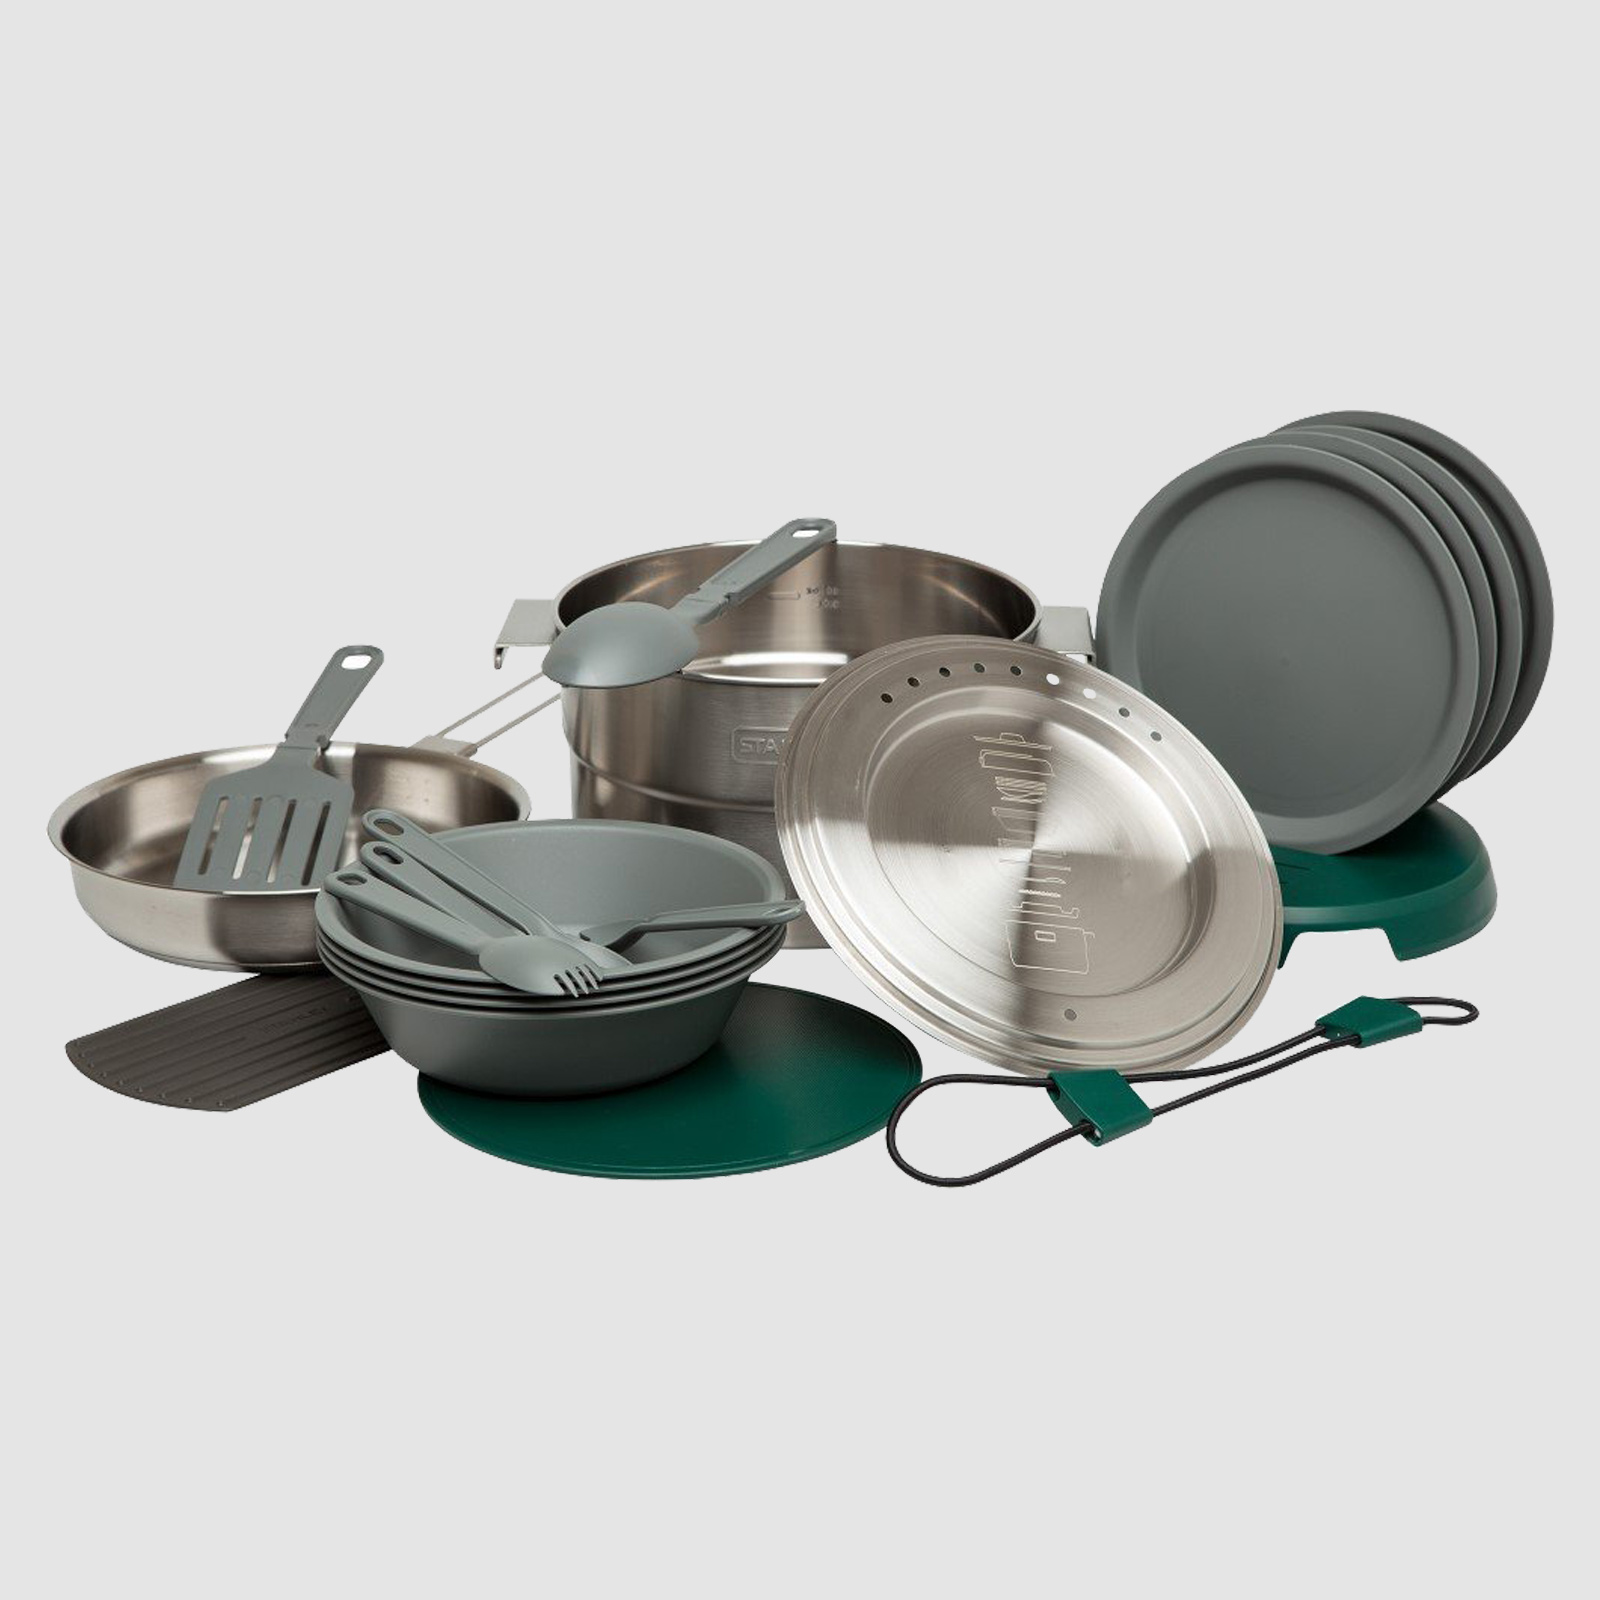 Stanley Adventure Series Base Camp Cook Set | $65-80